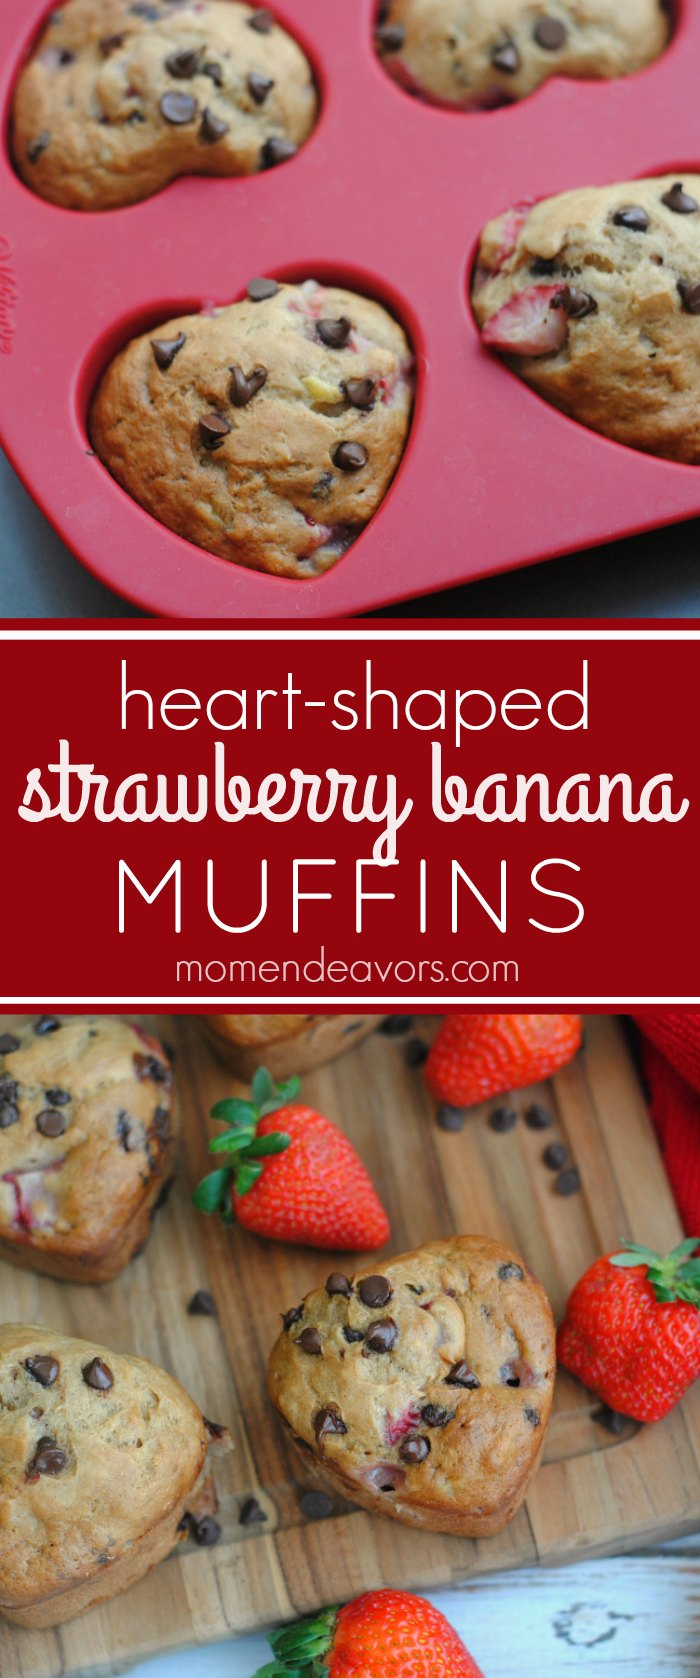 Heart-Shaped Strawberry Banana Muffins